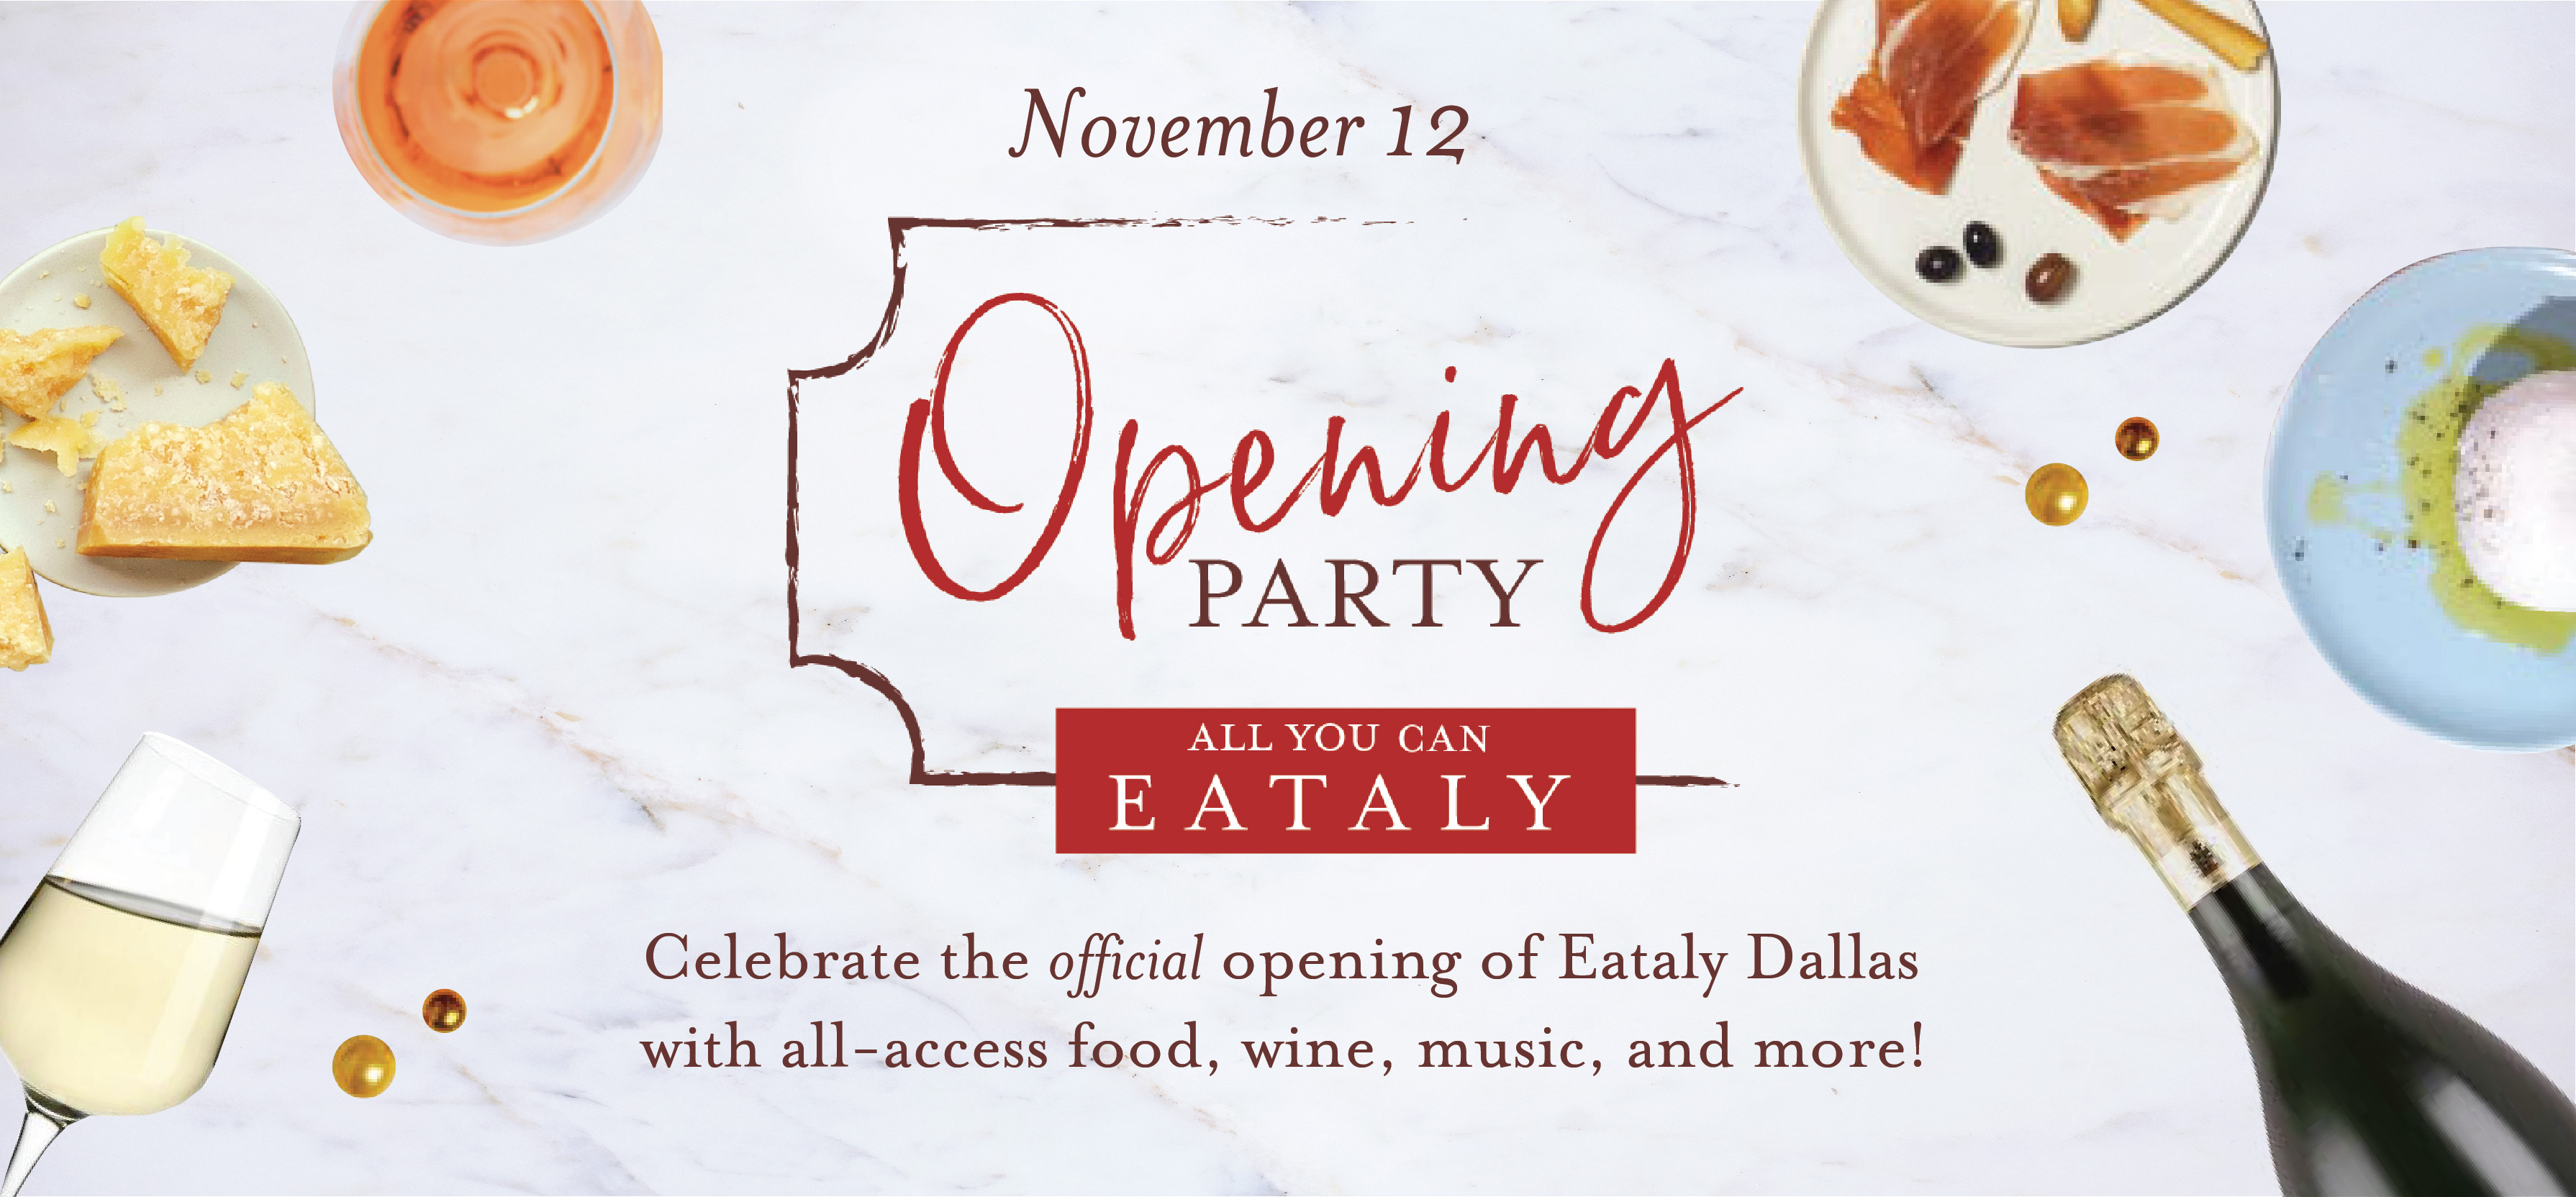 Party with us... Italian Style at Eataly Opening Party: All You Can Eataly!